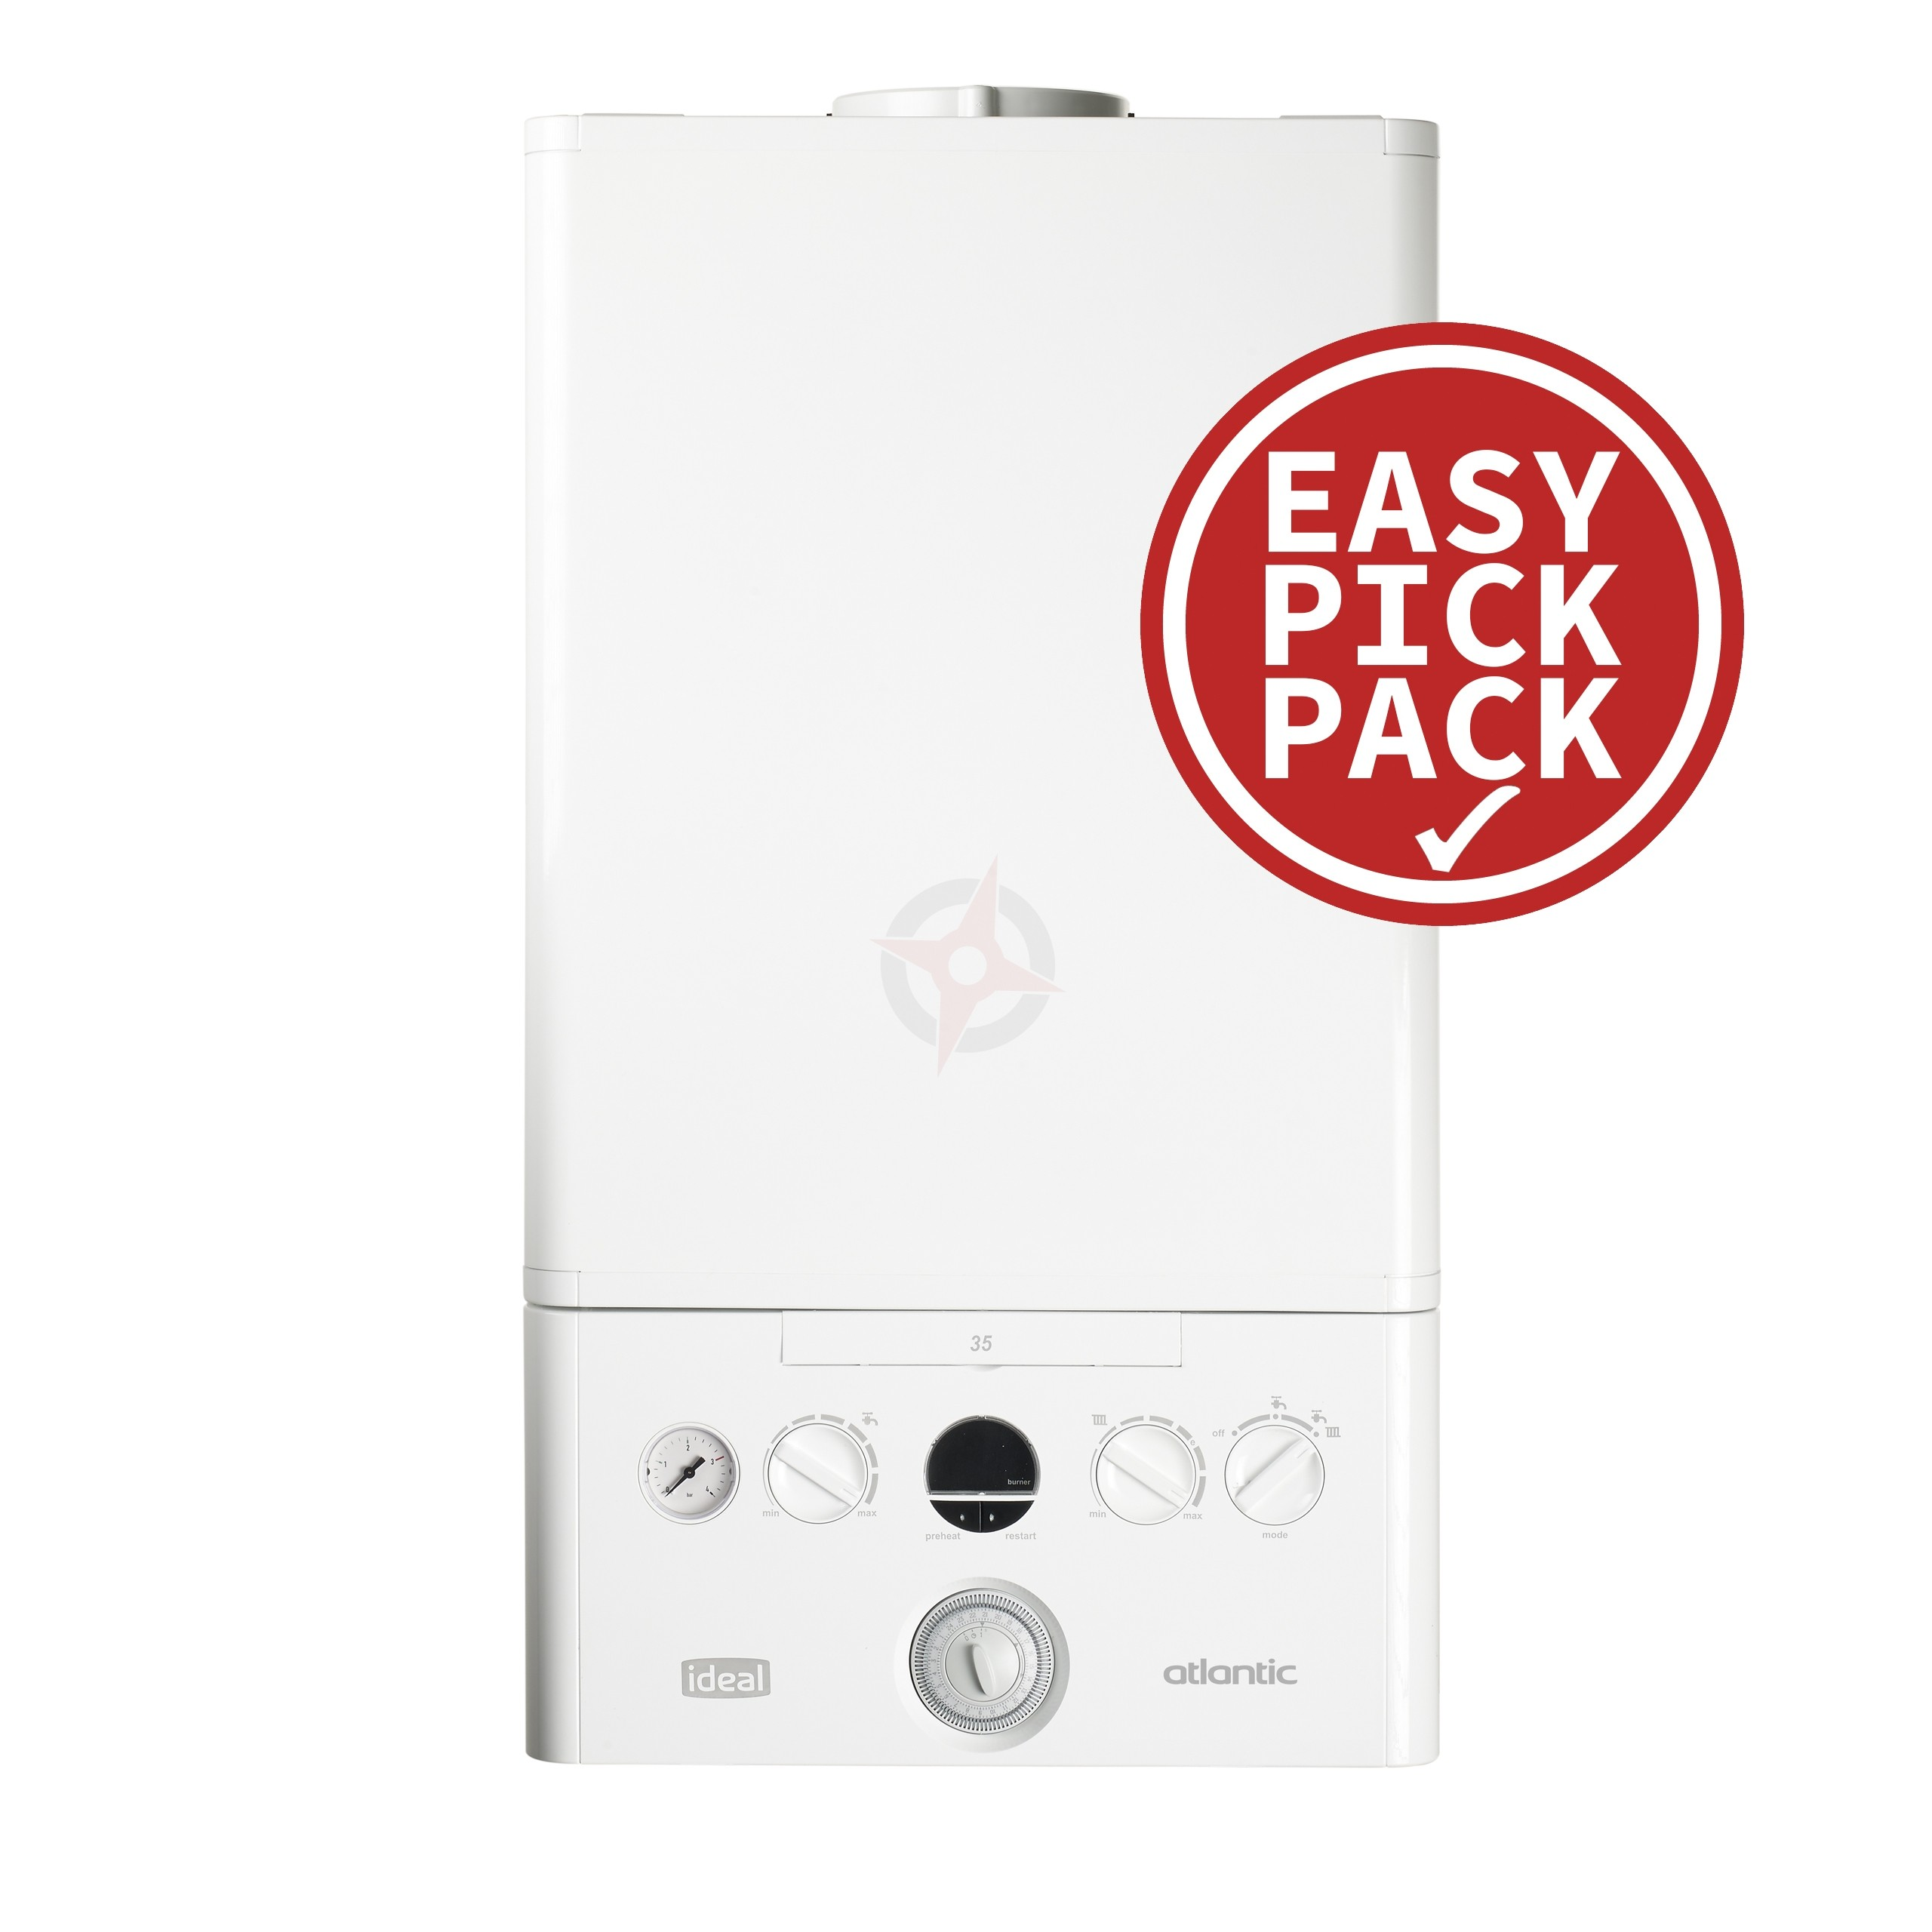 Ideal Atlantic 24 (ErP) Combi Boiler and Flue Easy Pick Pack